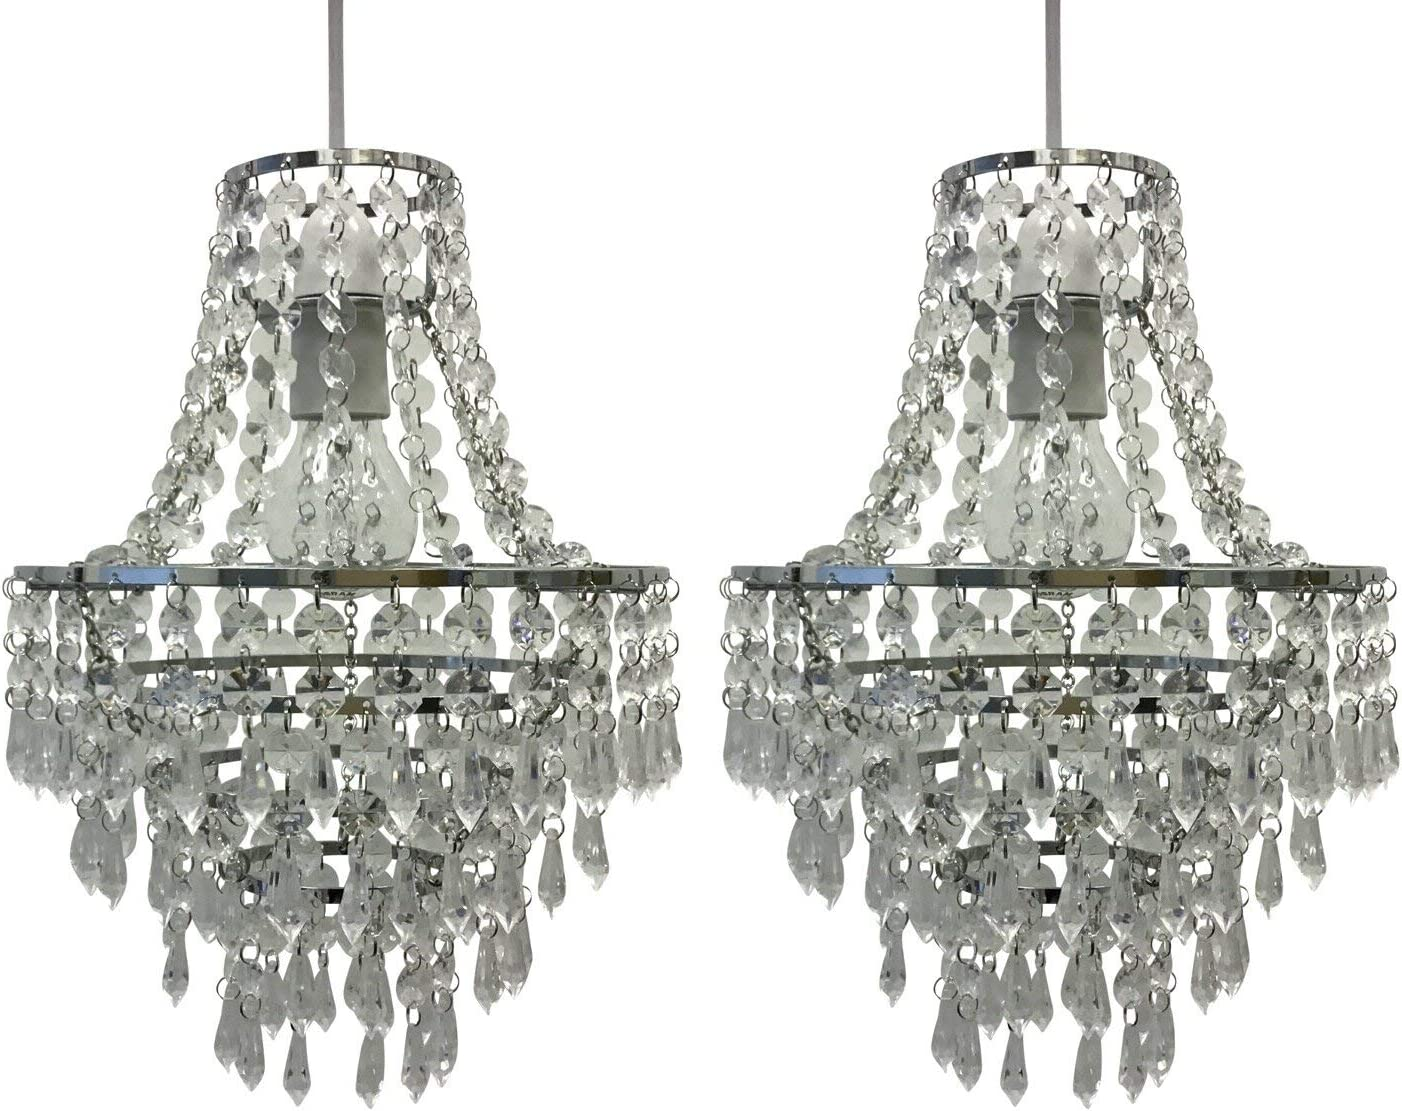 Chandelier Style Easy Fit Ceiling Light Shade Jewelled Lampshade Pendant